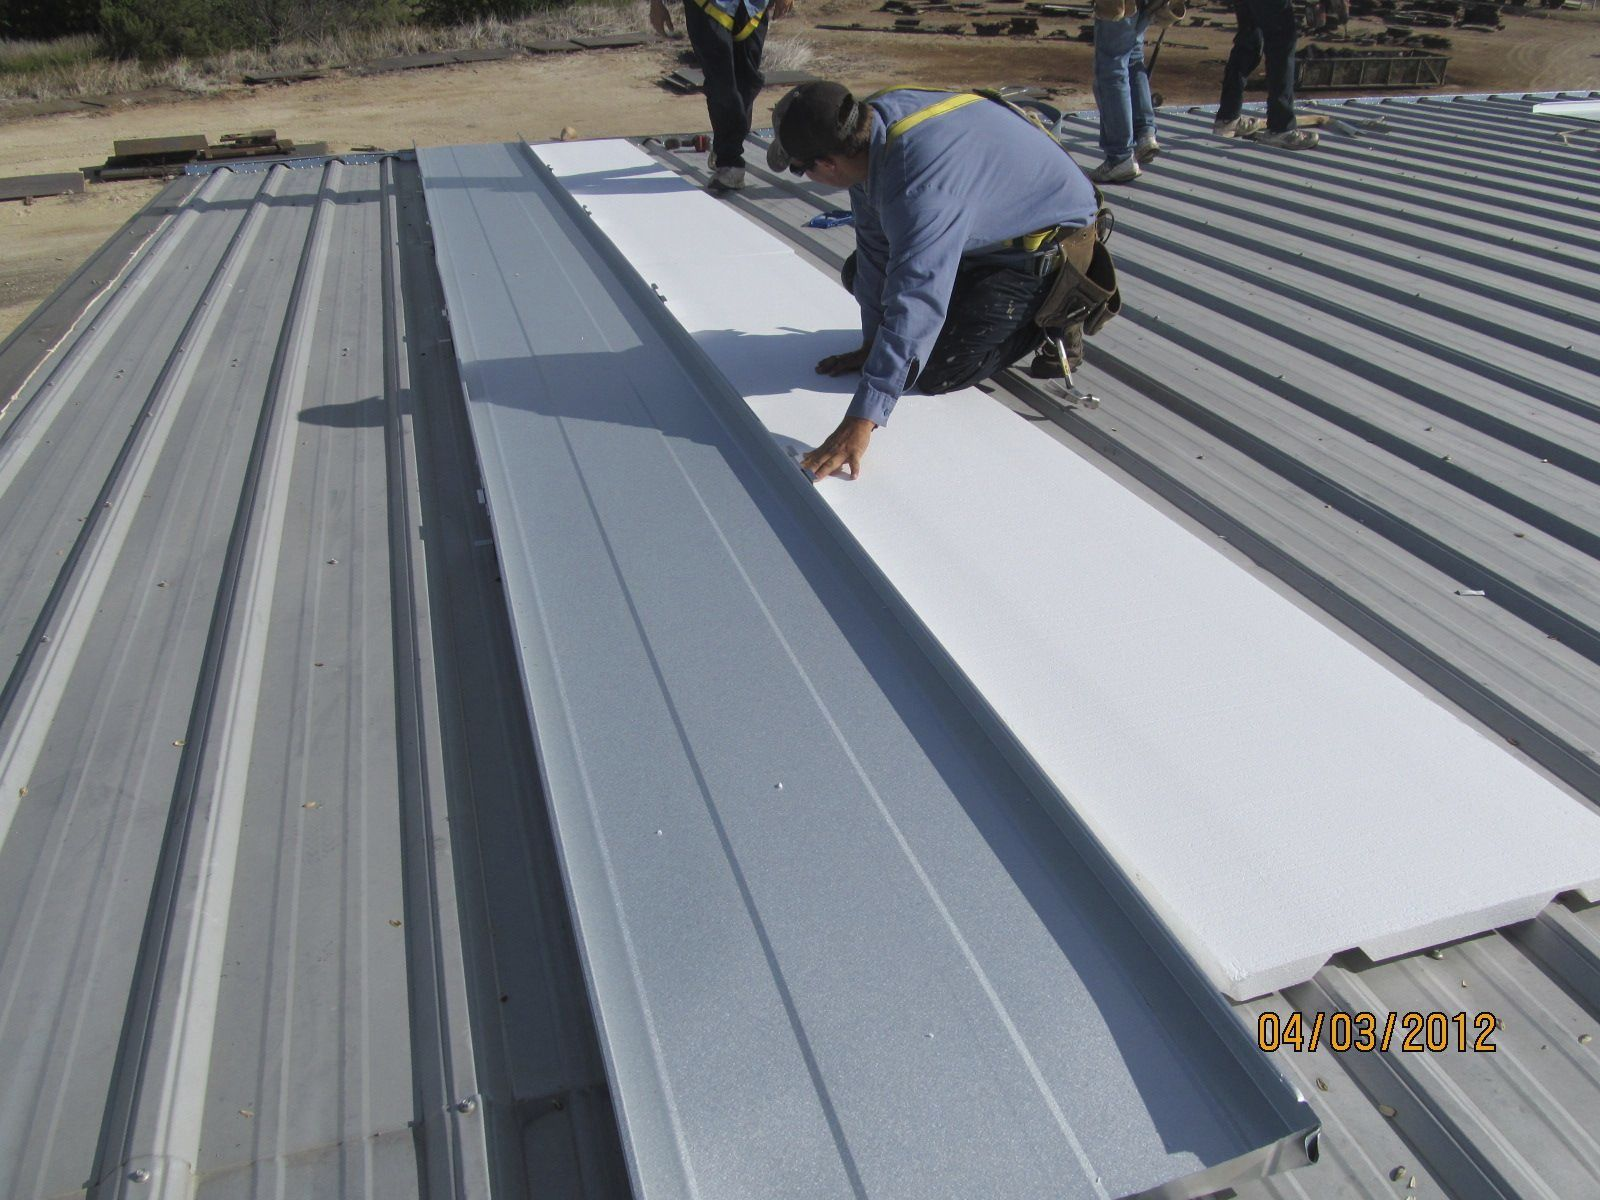 McElroy Metal has received patents on two frameless systems to recover the most prevalent metal roof panels in open-frame metal buildings.